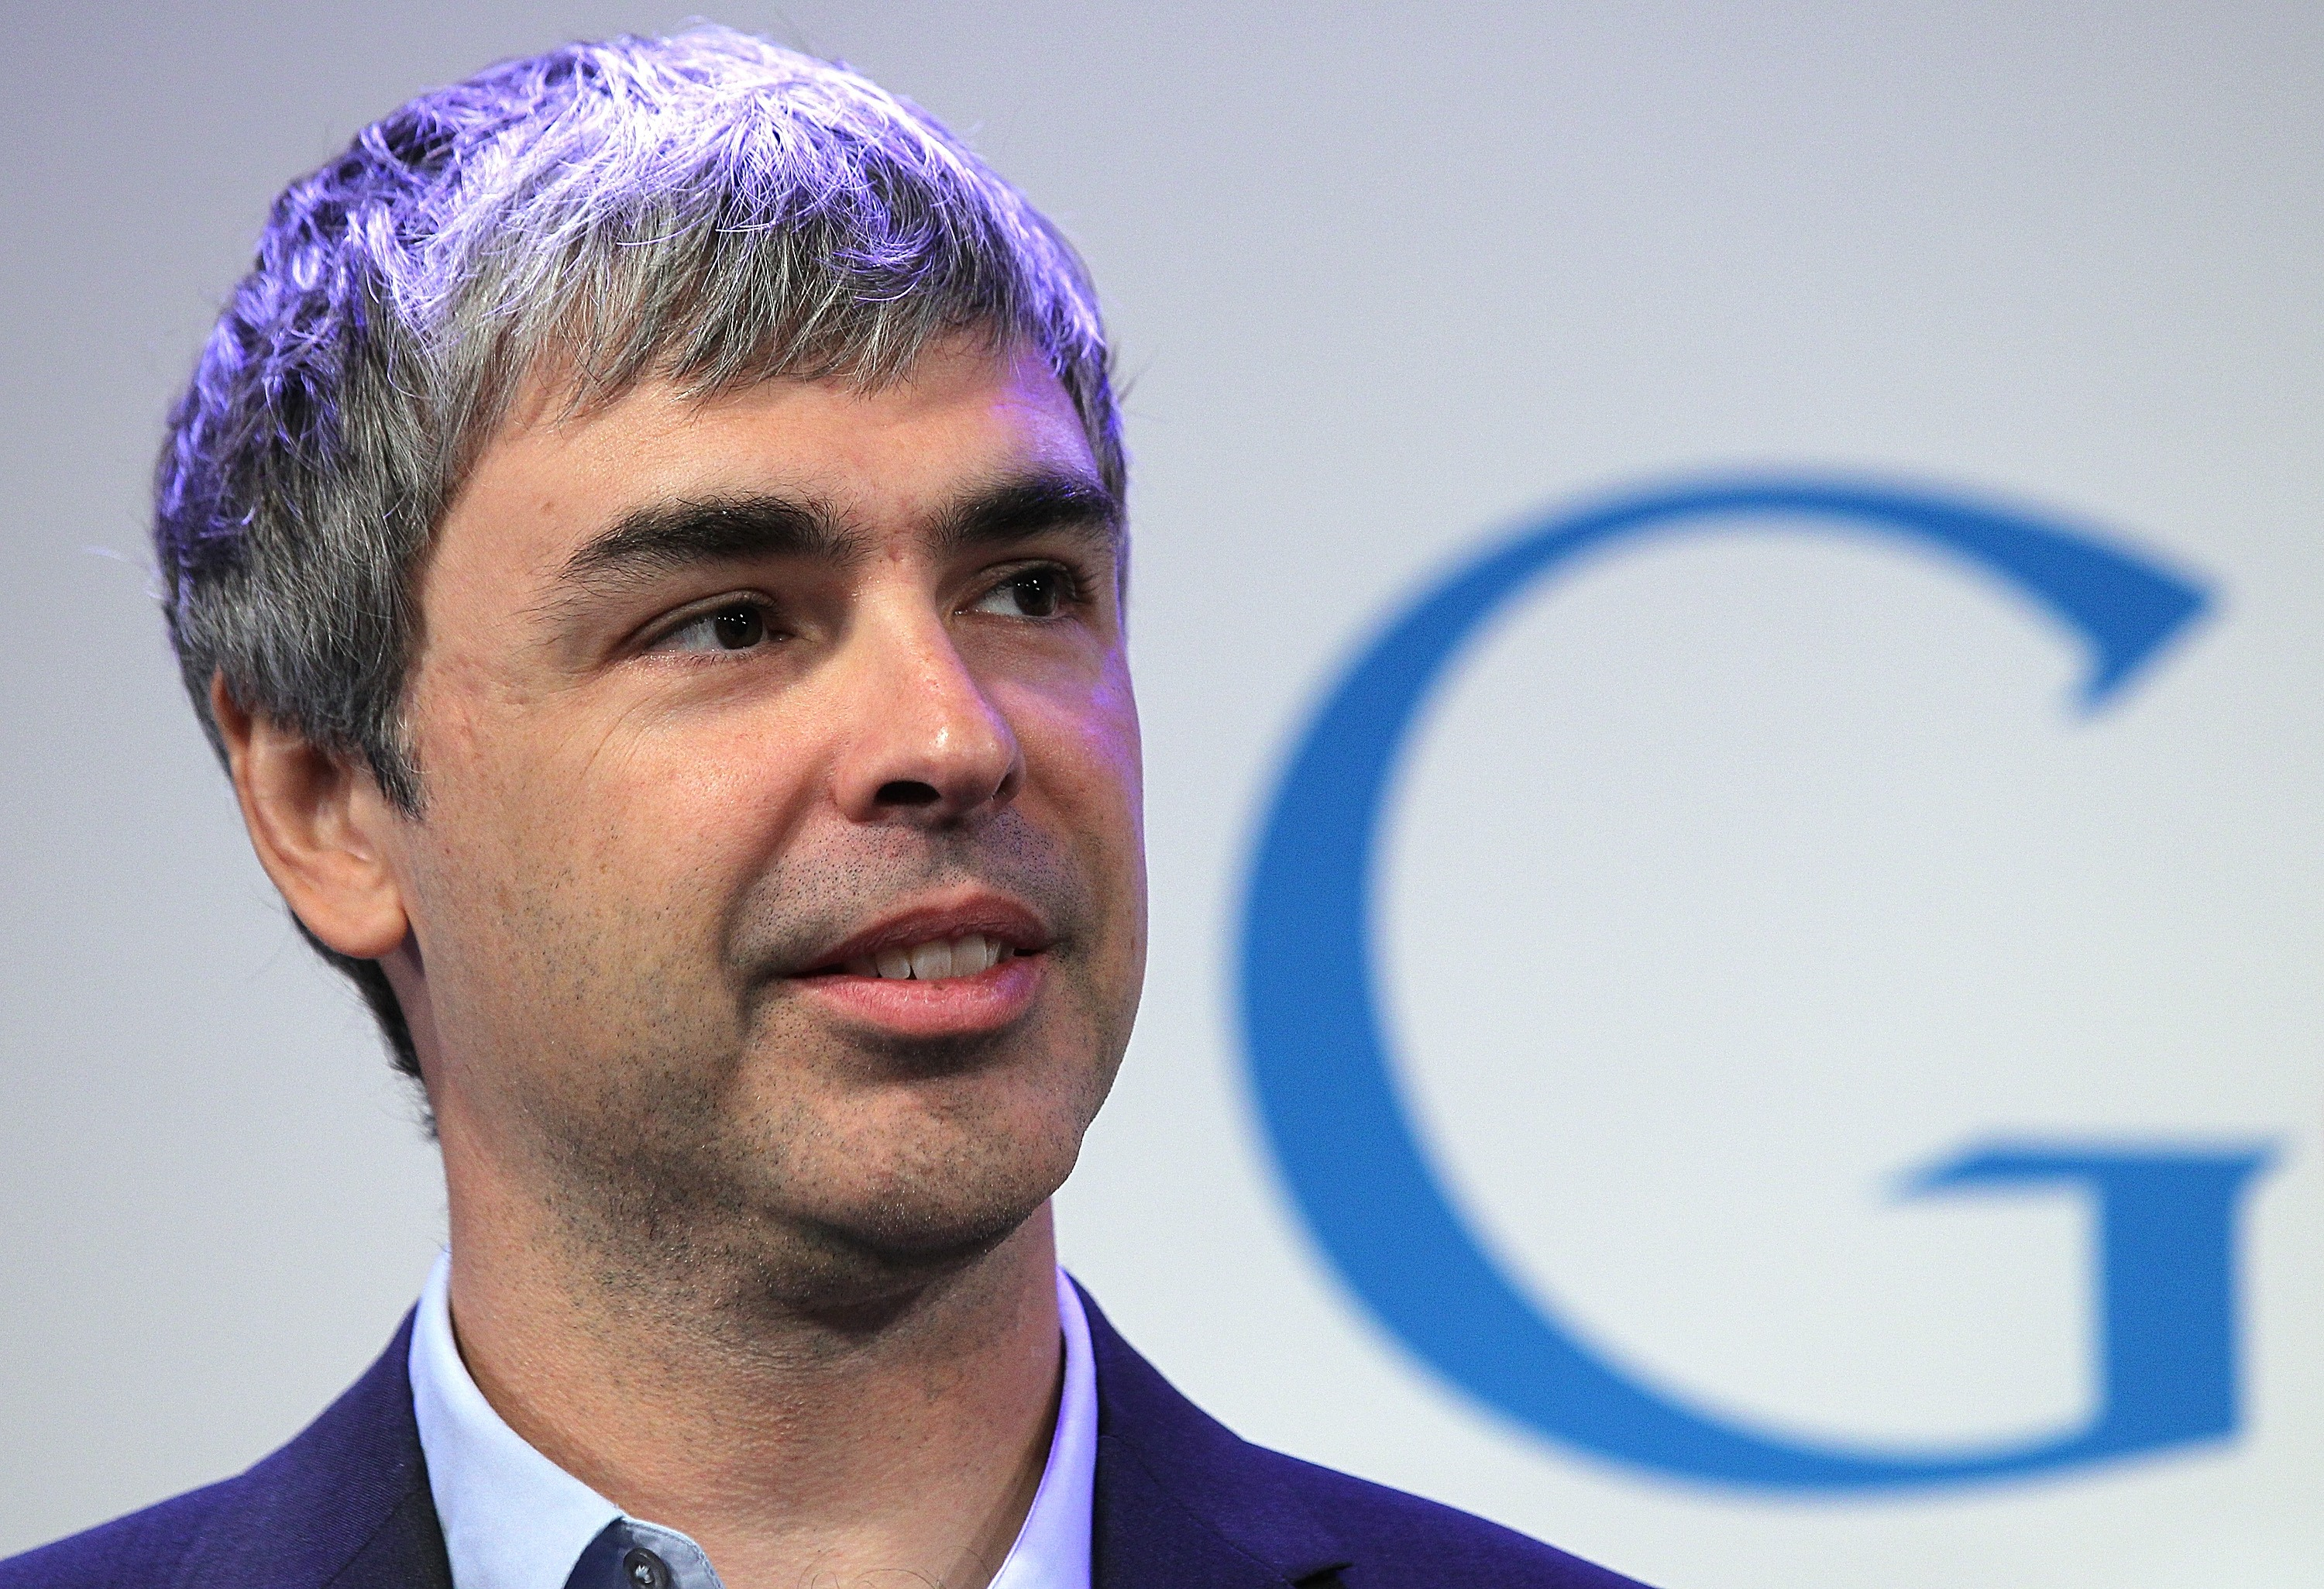 Google co-founder and CEO of Alphabet Larry Page